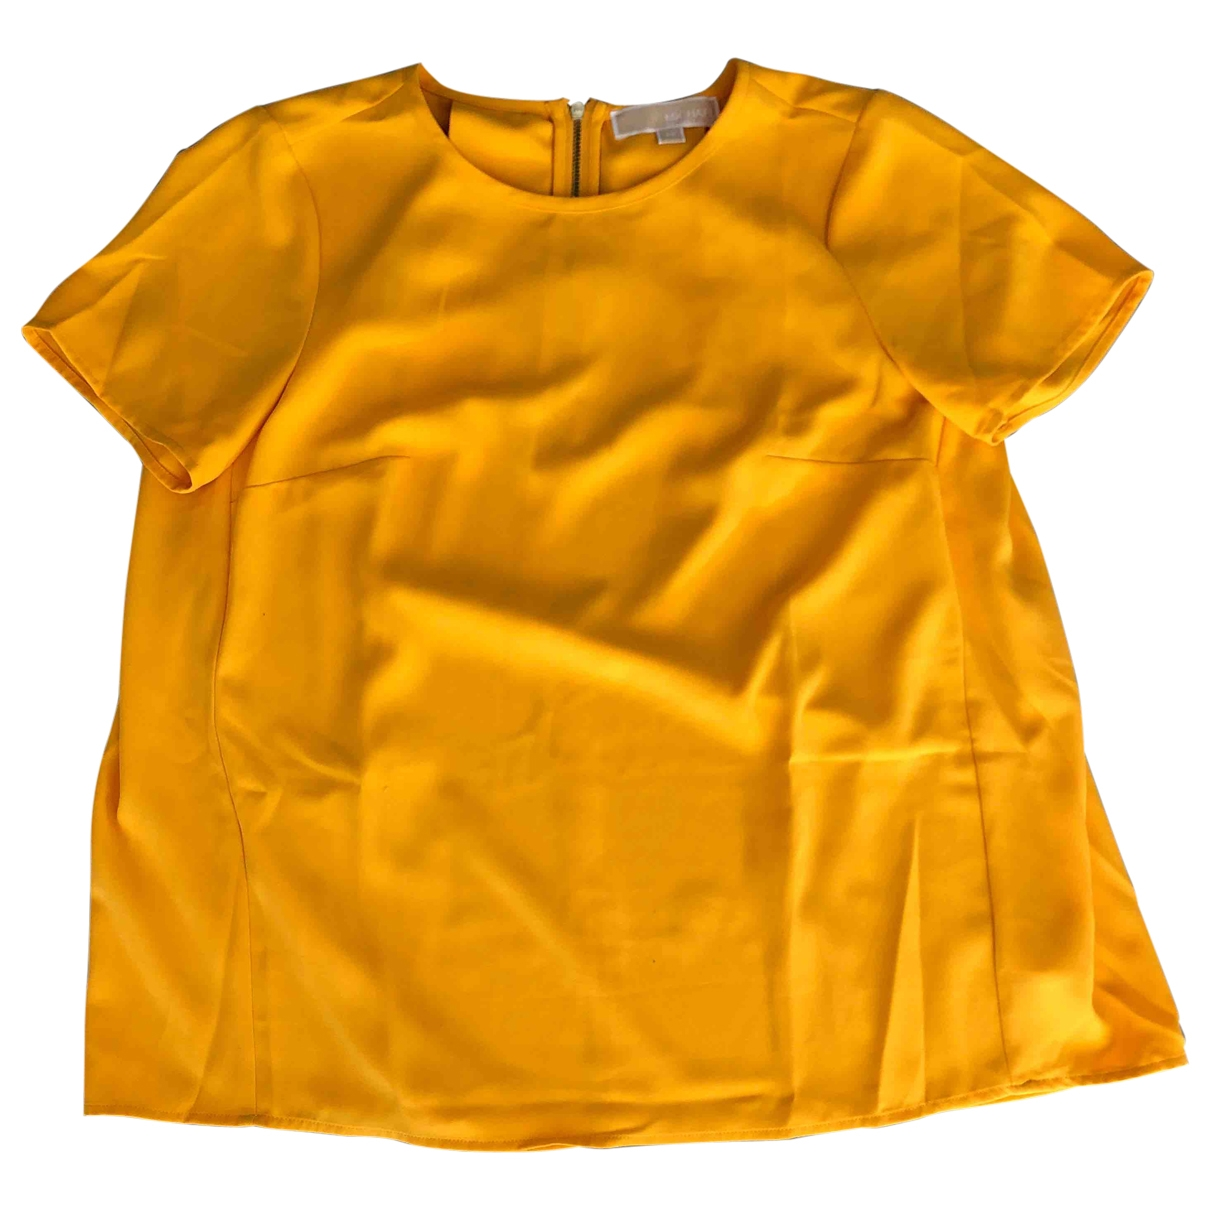 Michael Kors \N Yellow  top for Women XS International